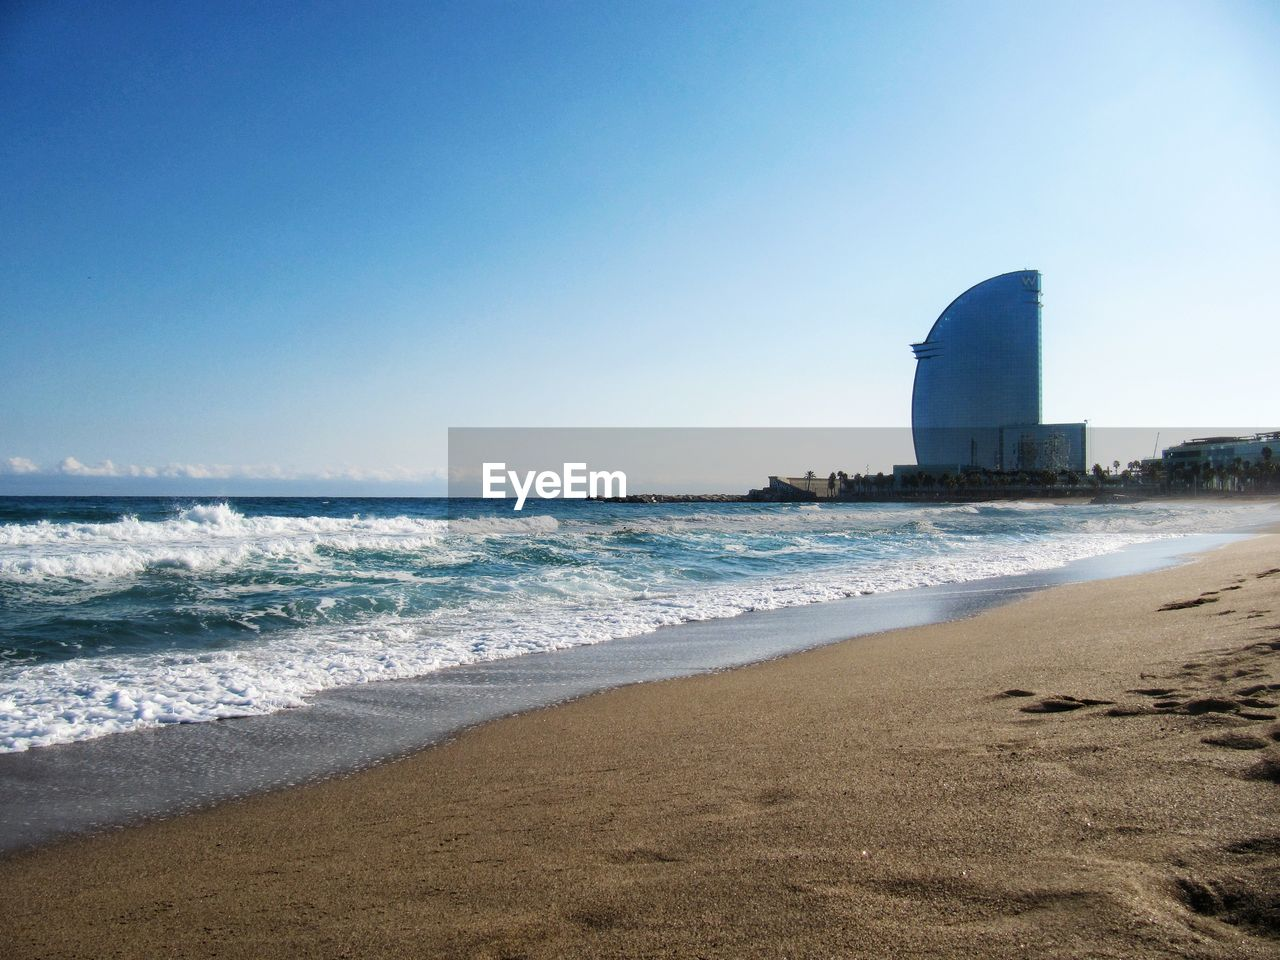 sea, beach, wave, built structure, clear sky, architecture, sand, water, building exterior, horizon over water, day, nature, no people, outdoors, lighthouse, beauty in nature, sky